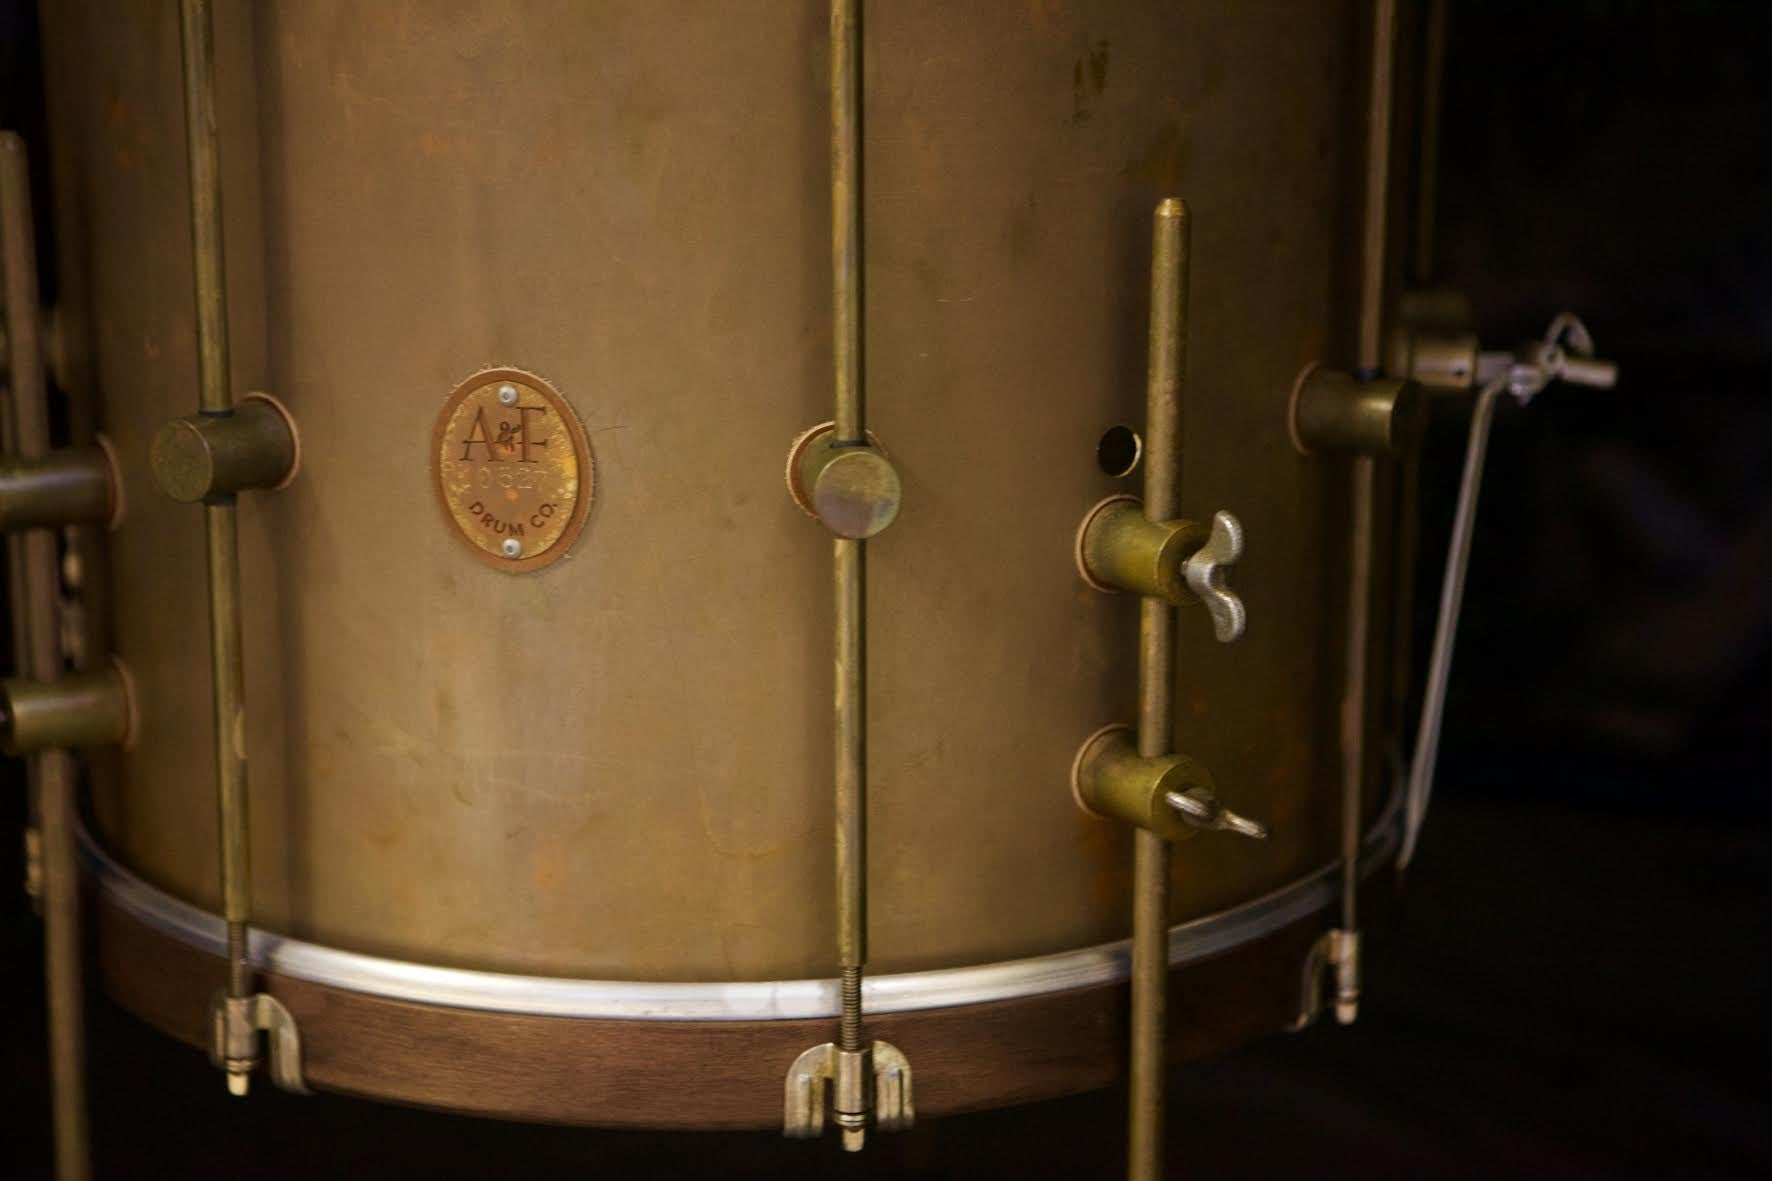 The Duke - A&F Drum Co - 3